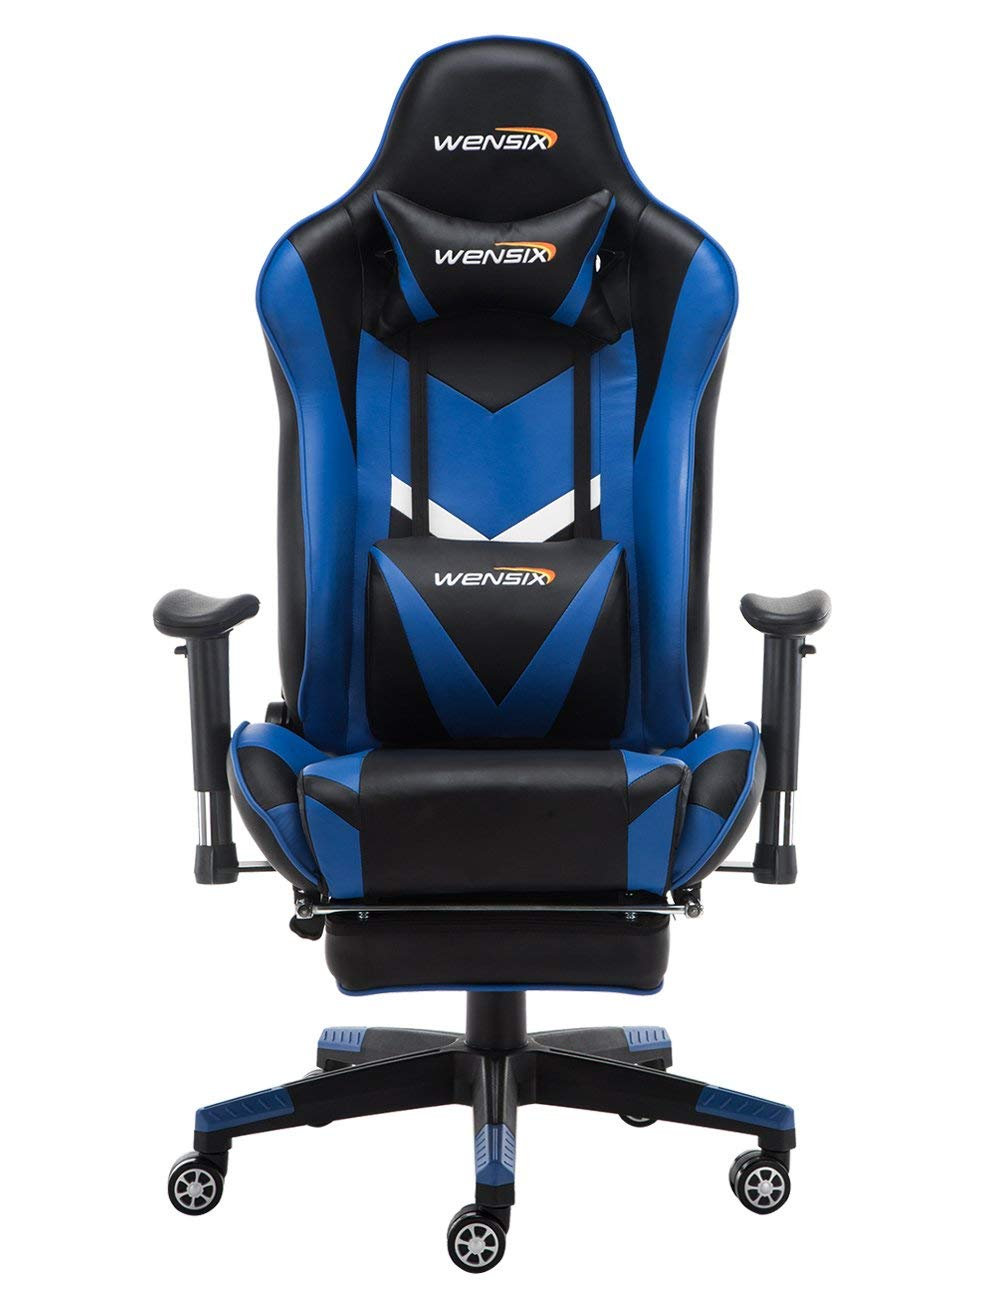 Best Gaming Chairs Under 200$ - Ultimate Game Chair